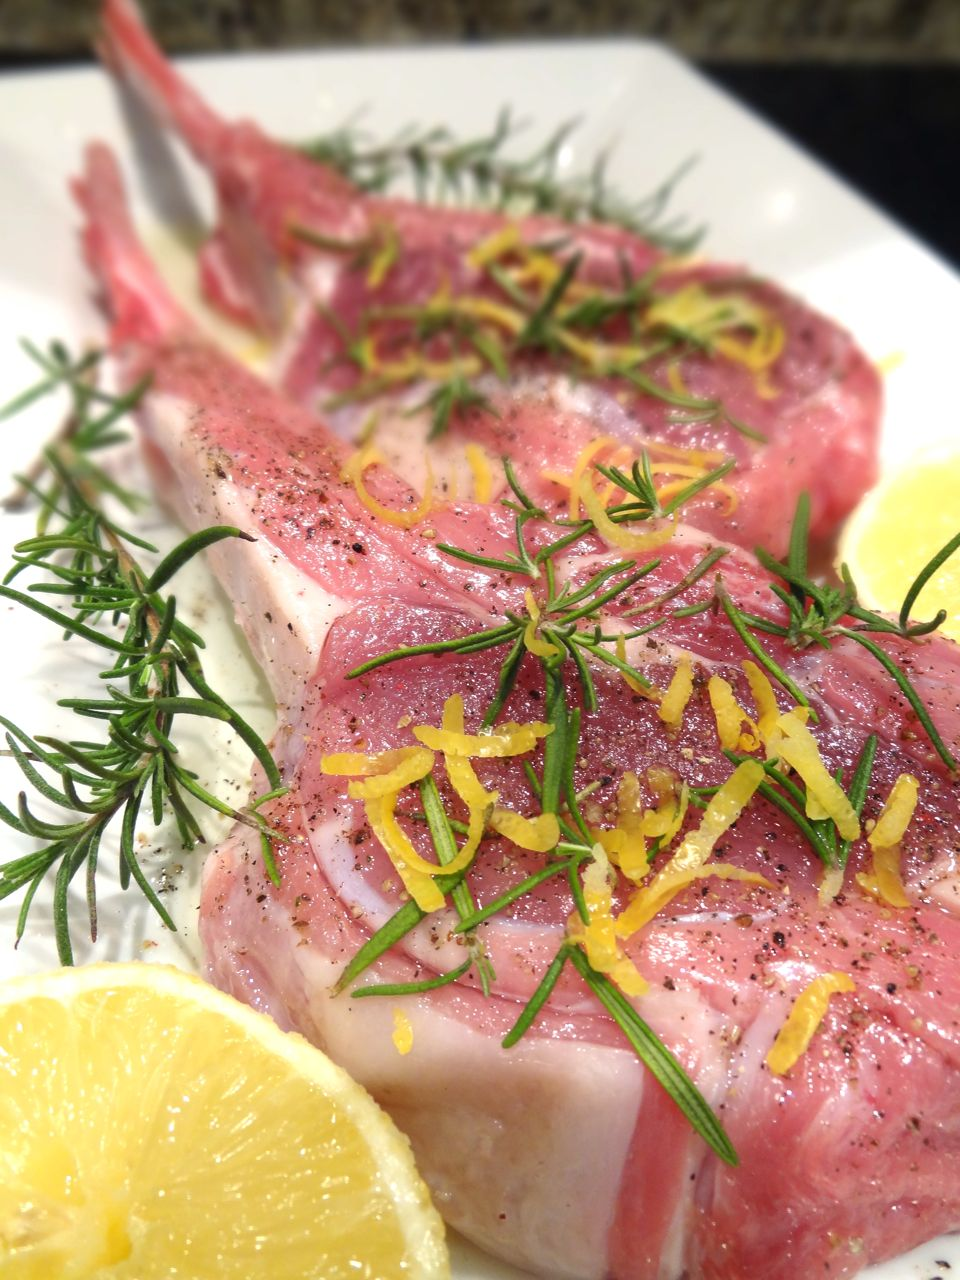 Scrumpdillyicious Grilled Tuscan Style Veal Chops With Lemon Gremolata